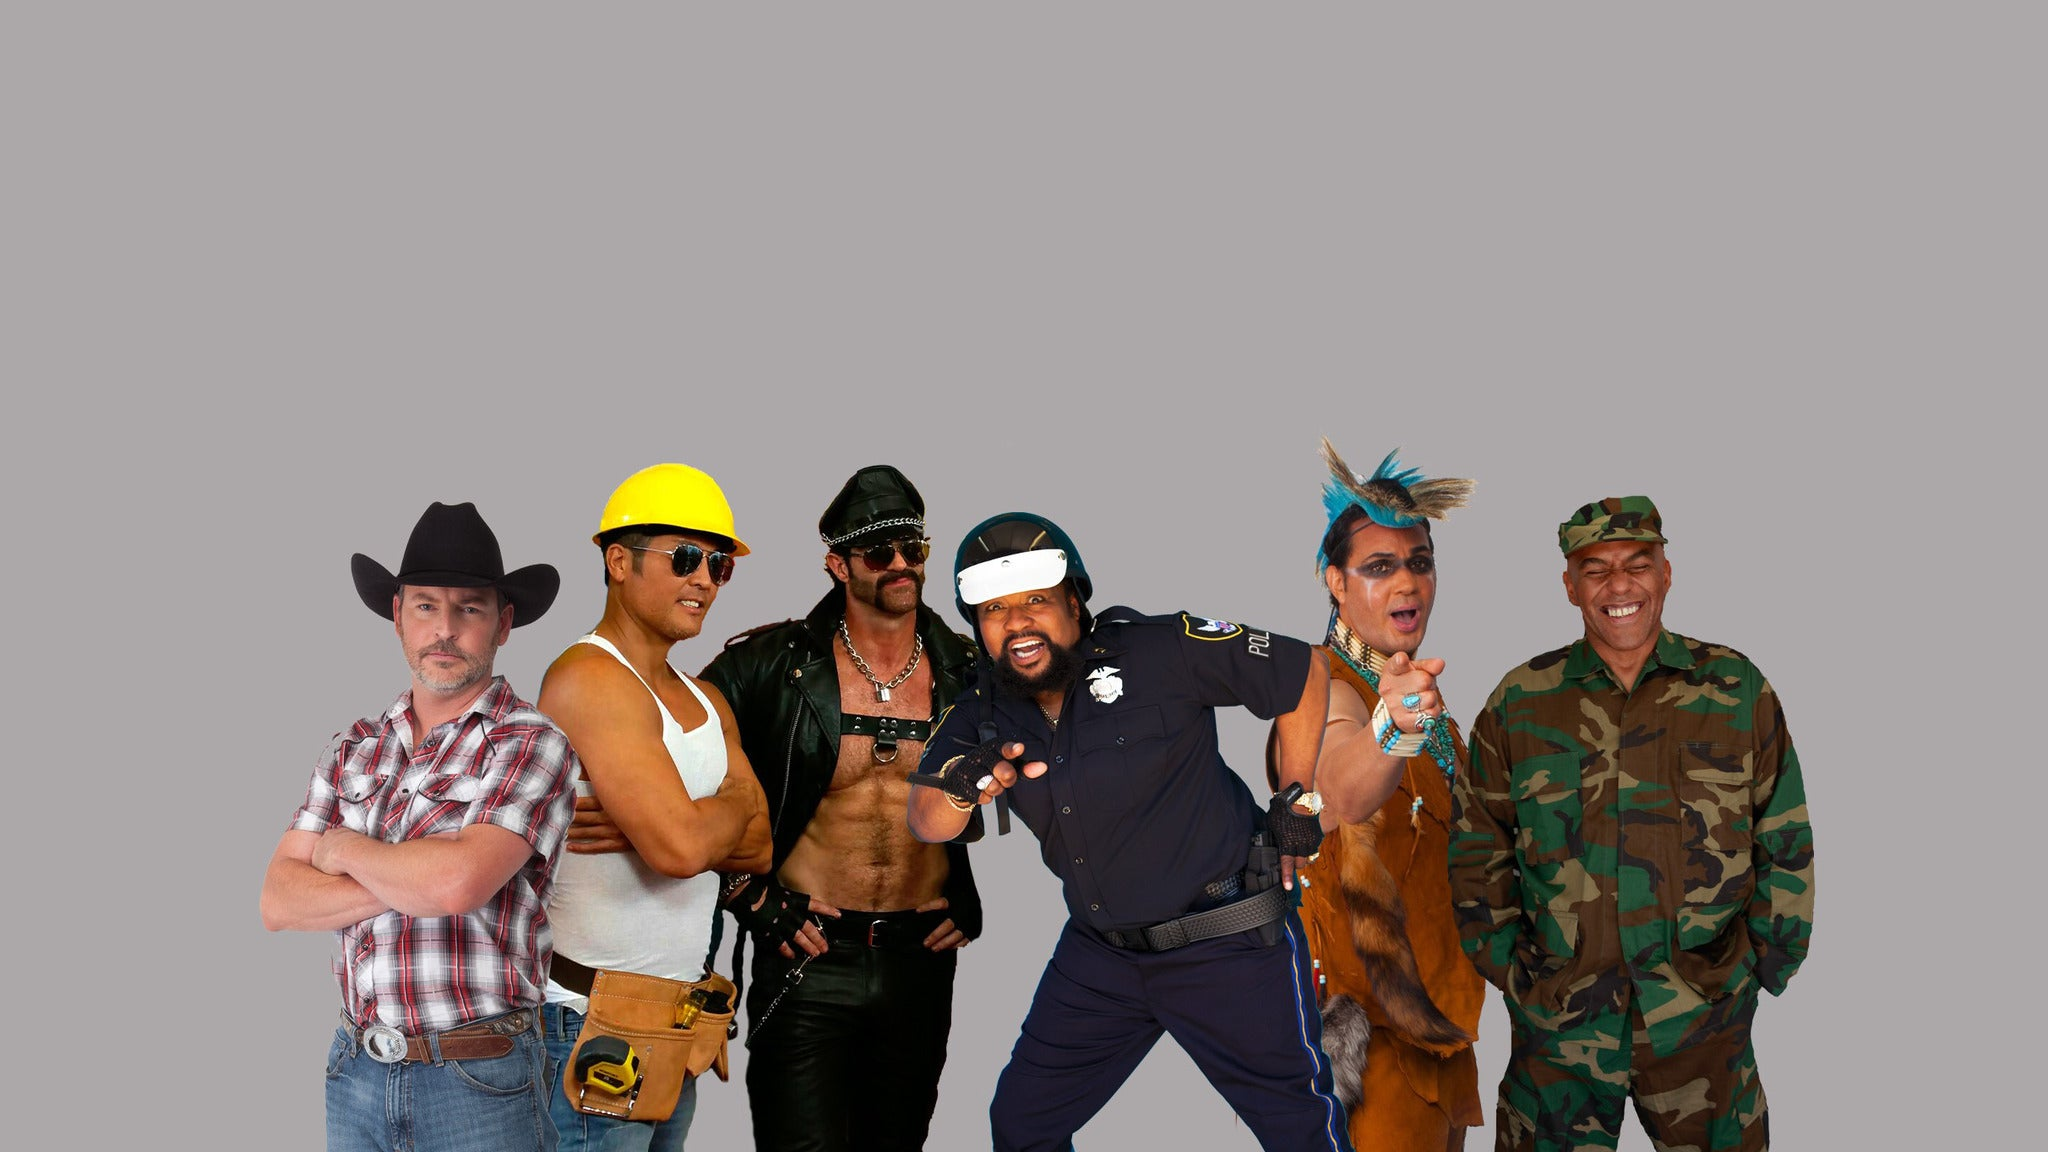 Village People at Pechanga Resort and Casino